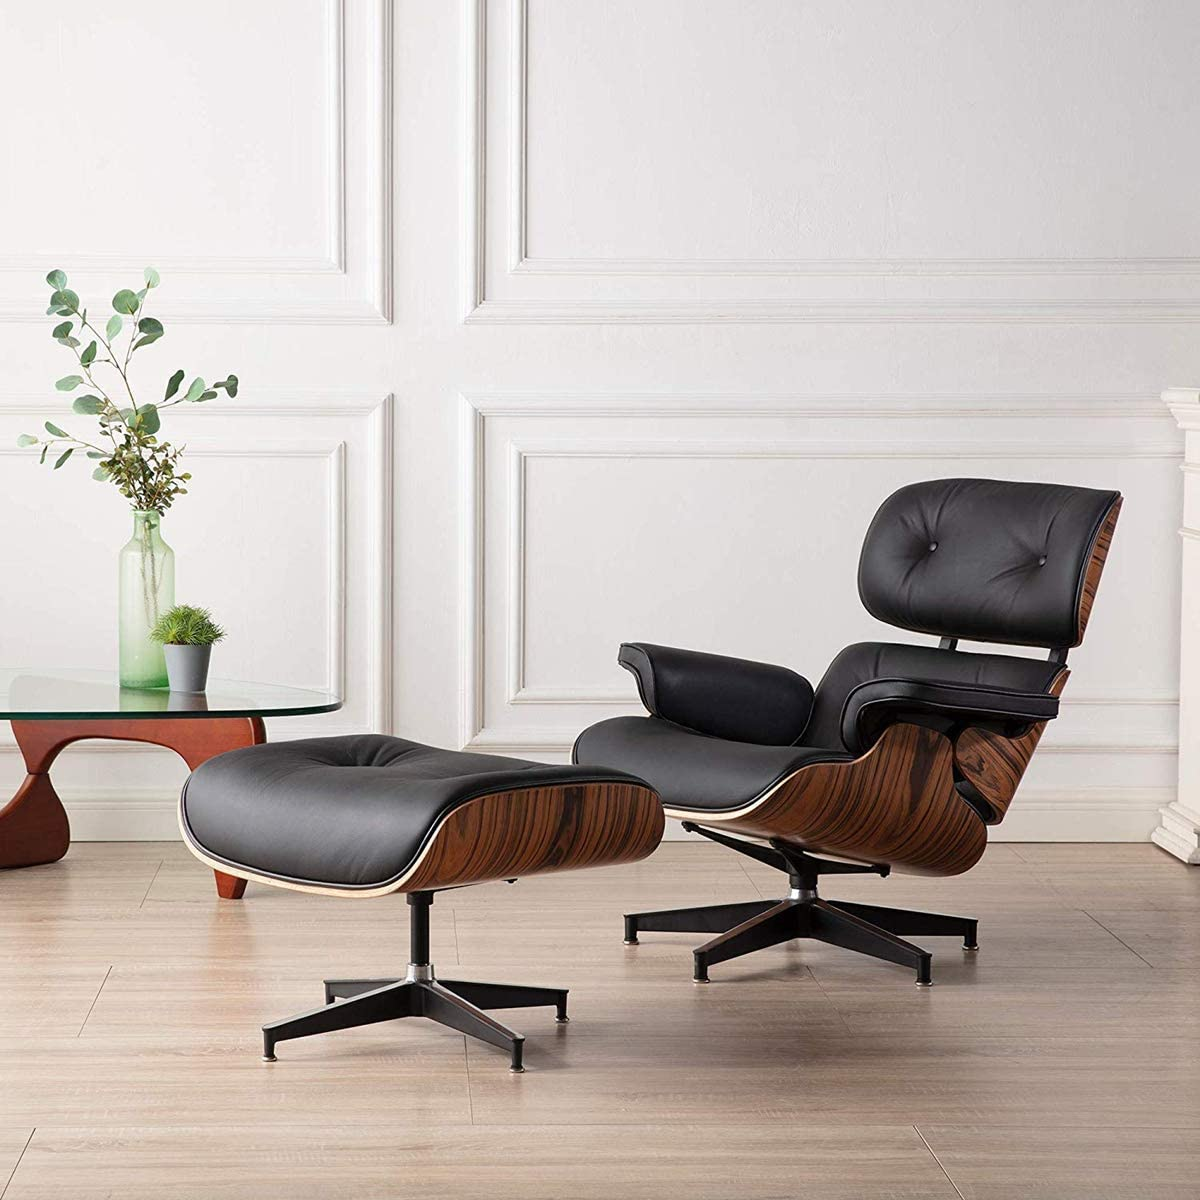 Vitra Lounge Chair Replica the best eames chair replica [may 2020] - comfy zen